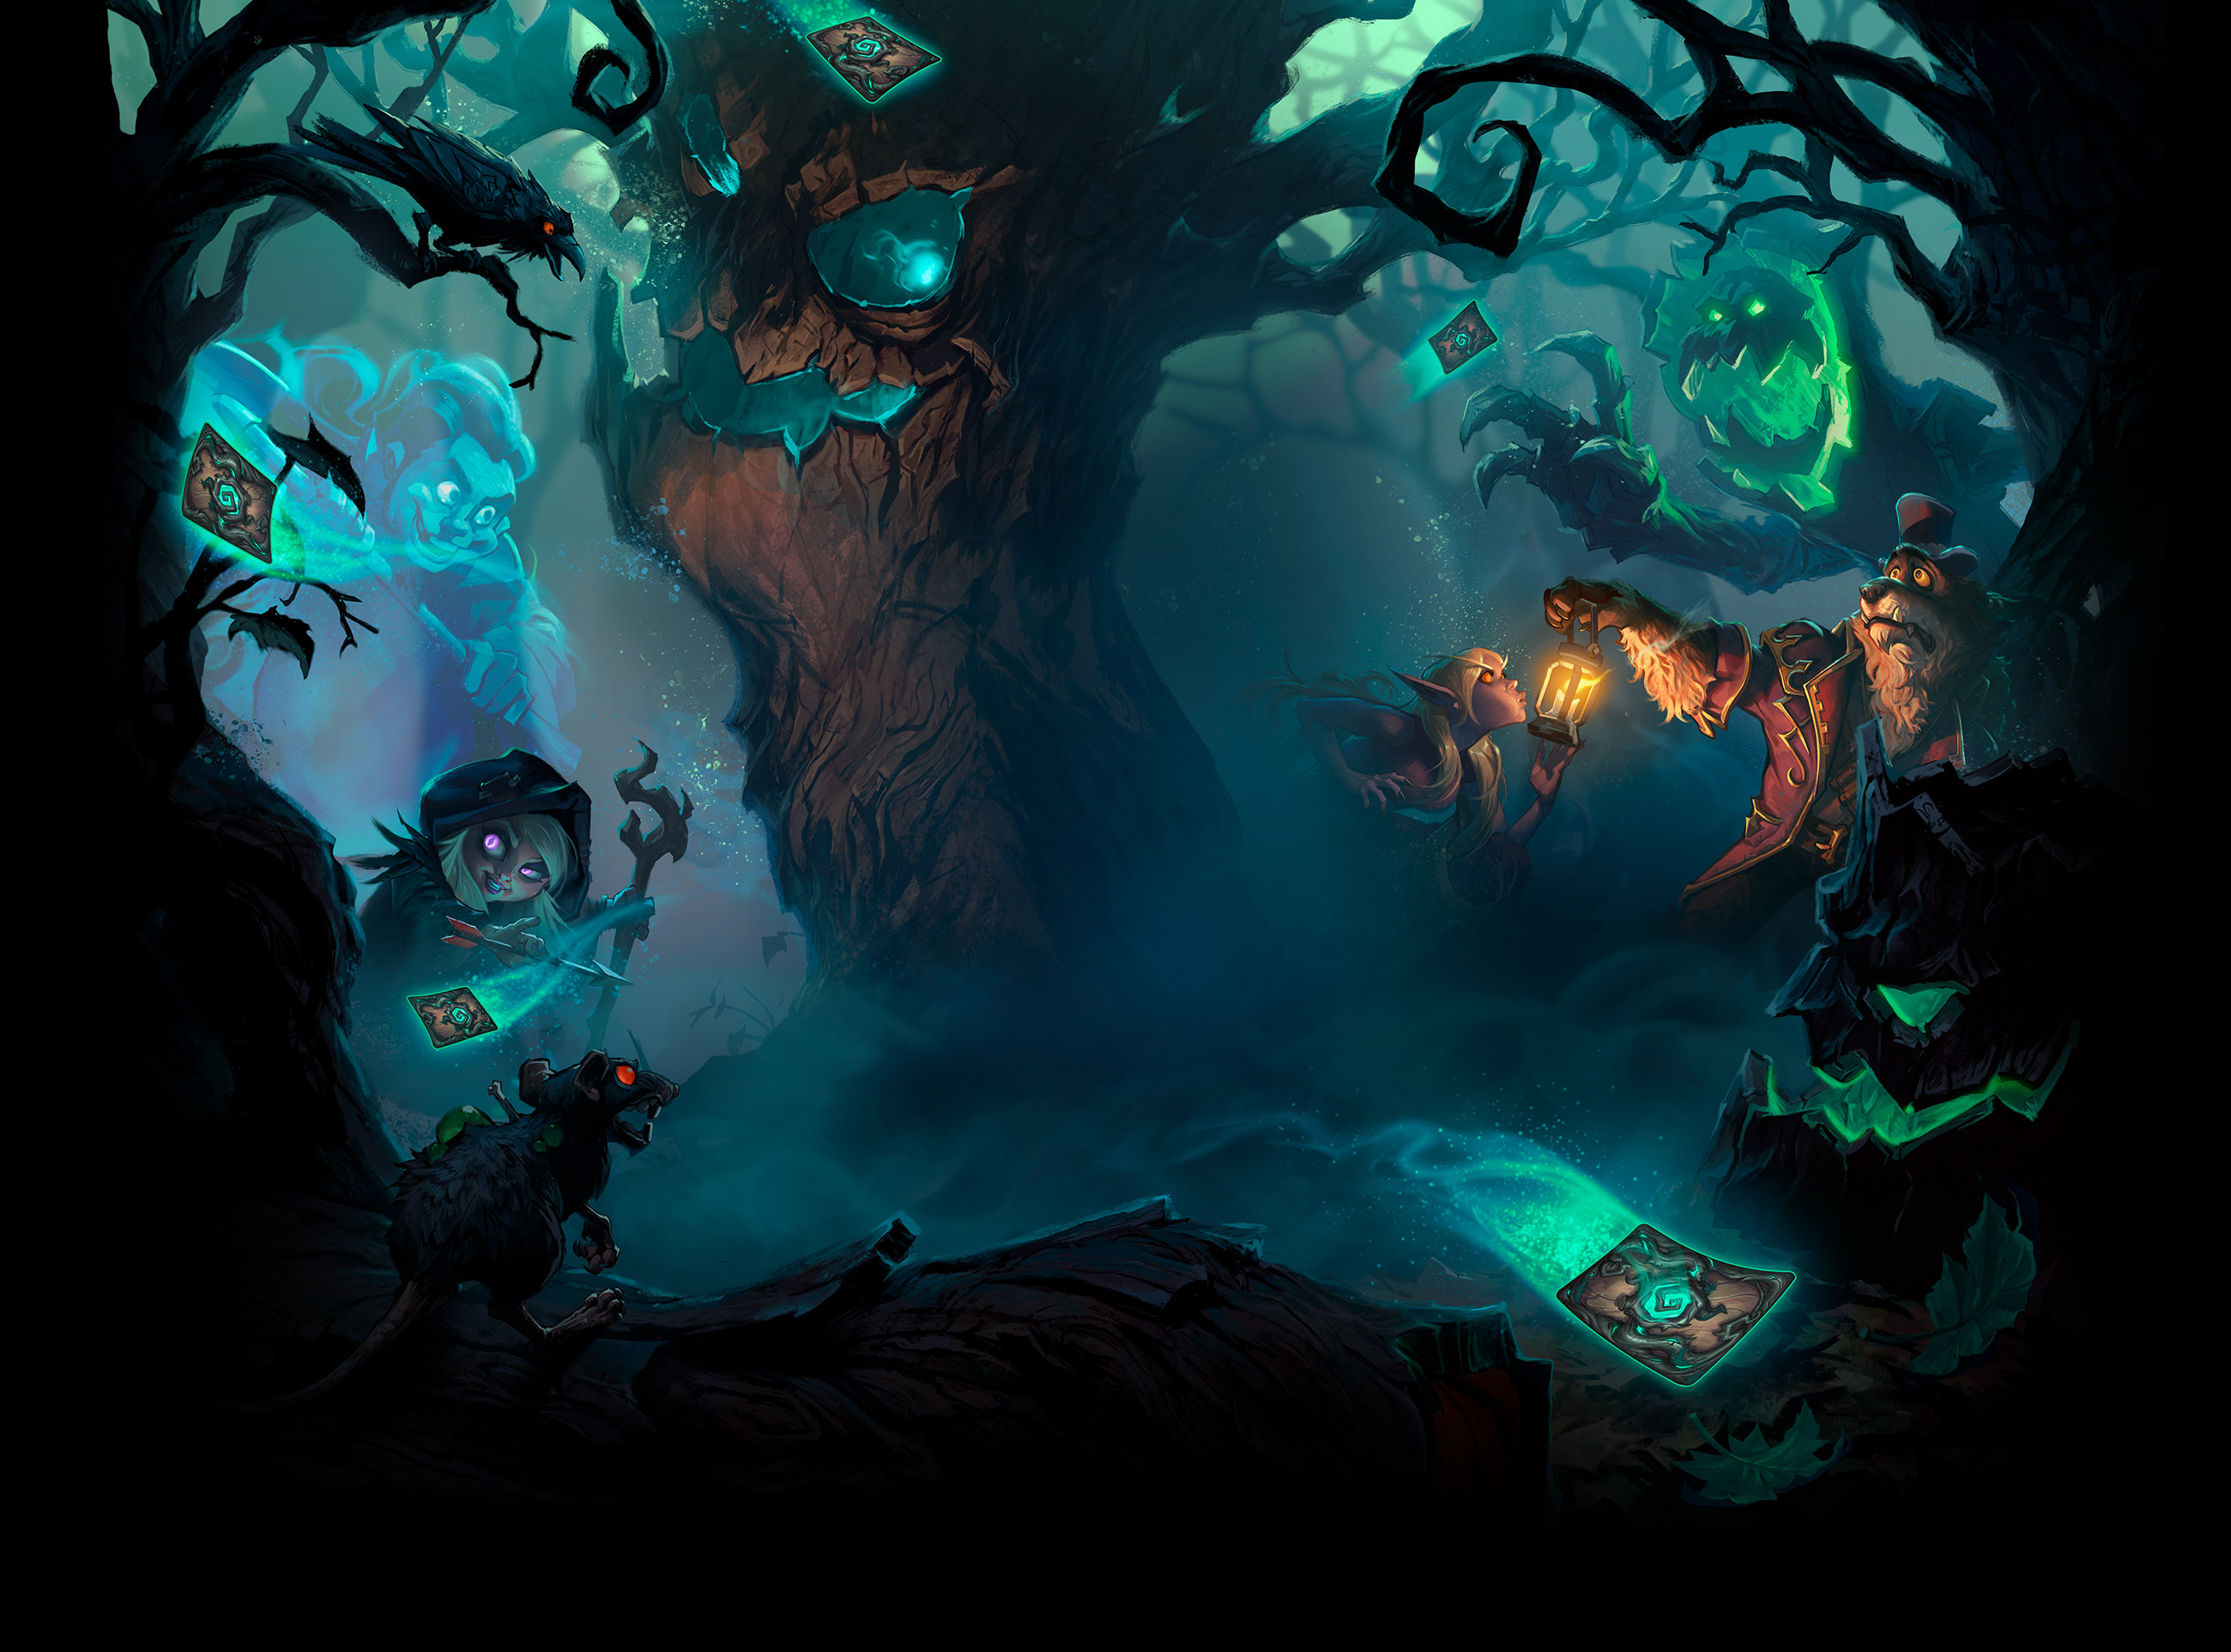 The Witchwood is Hearthstone's next expansion, adds a new single-player mode